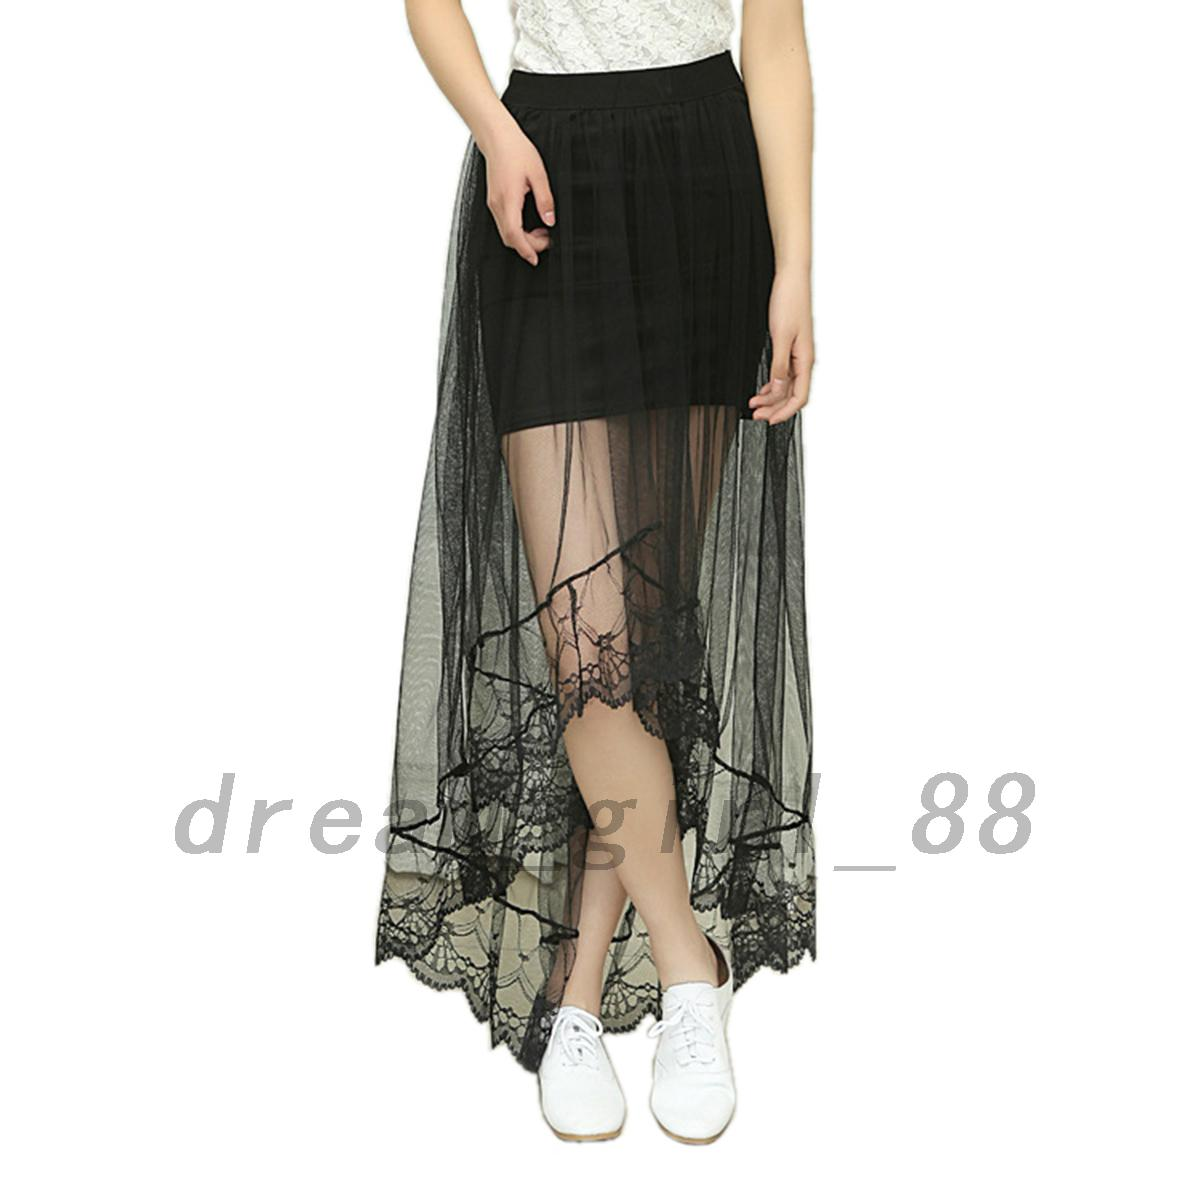 Airy-Mesh-Women-039-s-Lightweight-Floral-Evening-Cocktail-Party-Prom-High-Low-Skirt